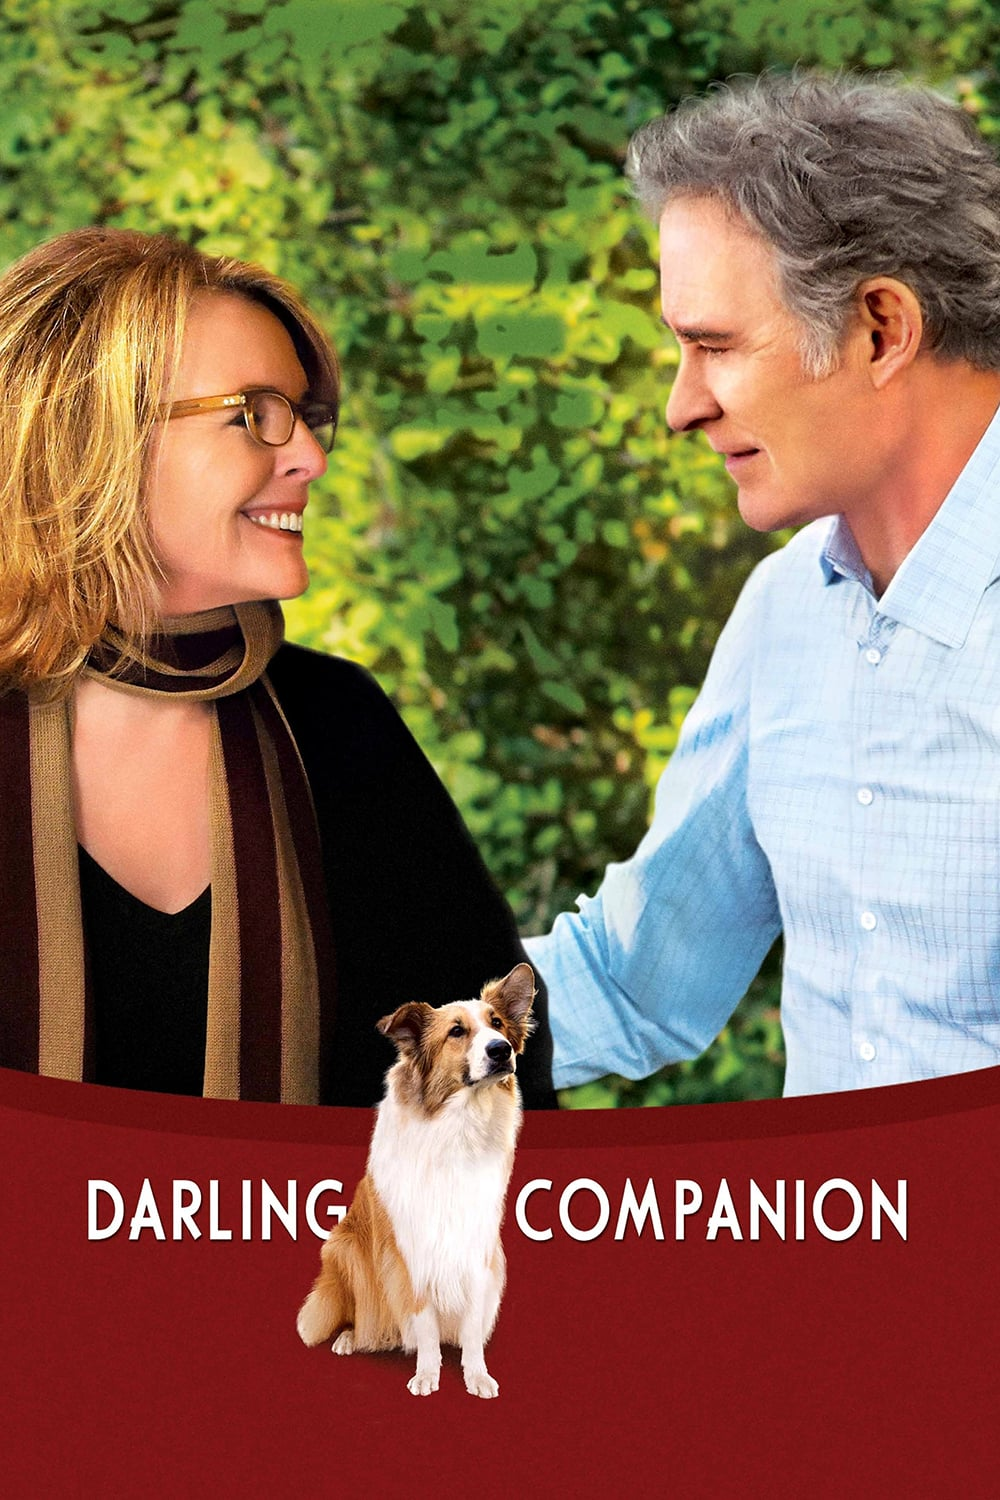 Darling Companion Movie Streaming Online